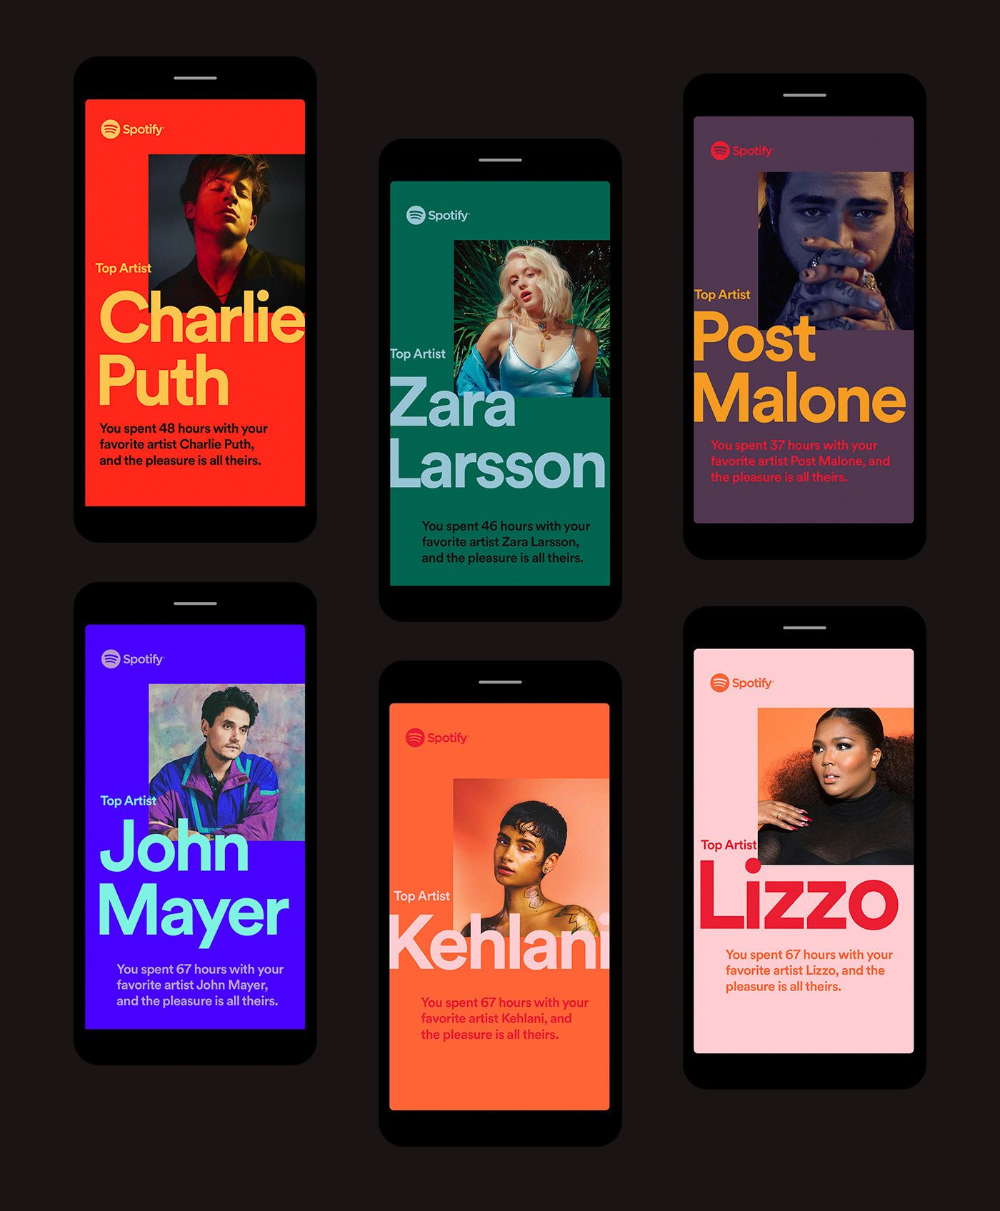 spotify wrapped design Google Search в 2020 г (с